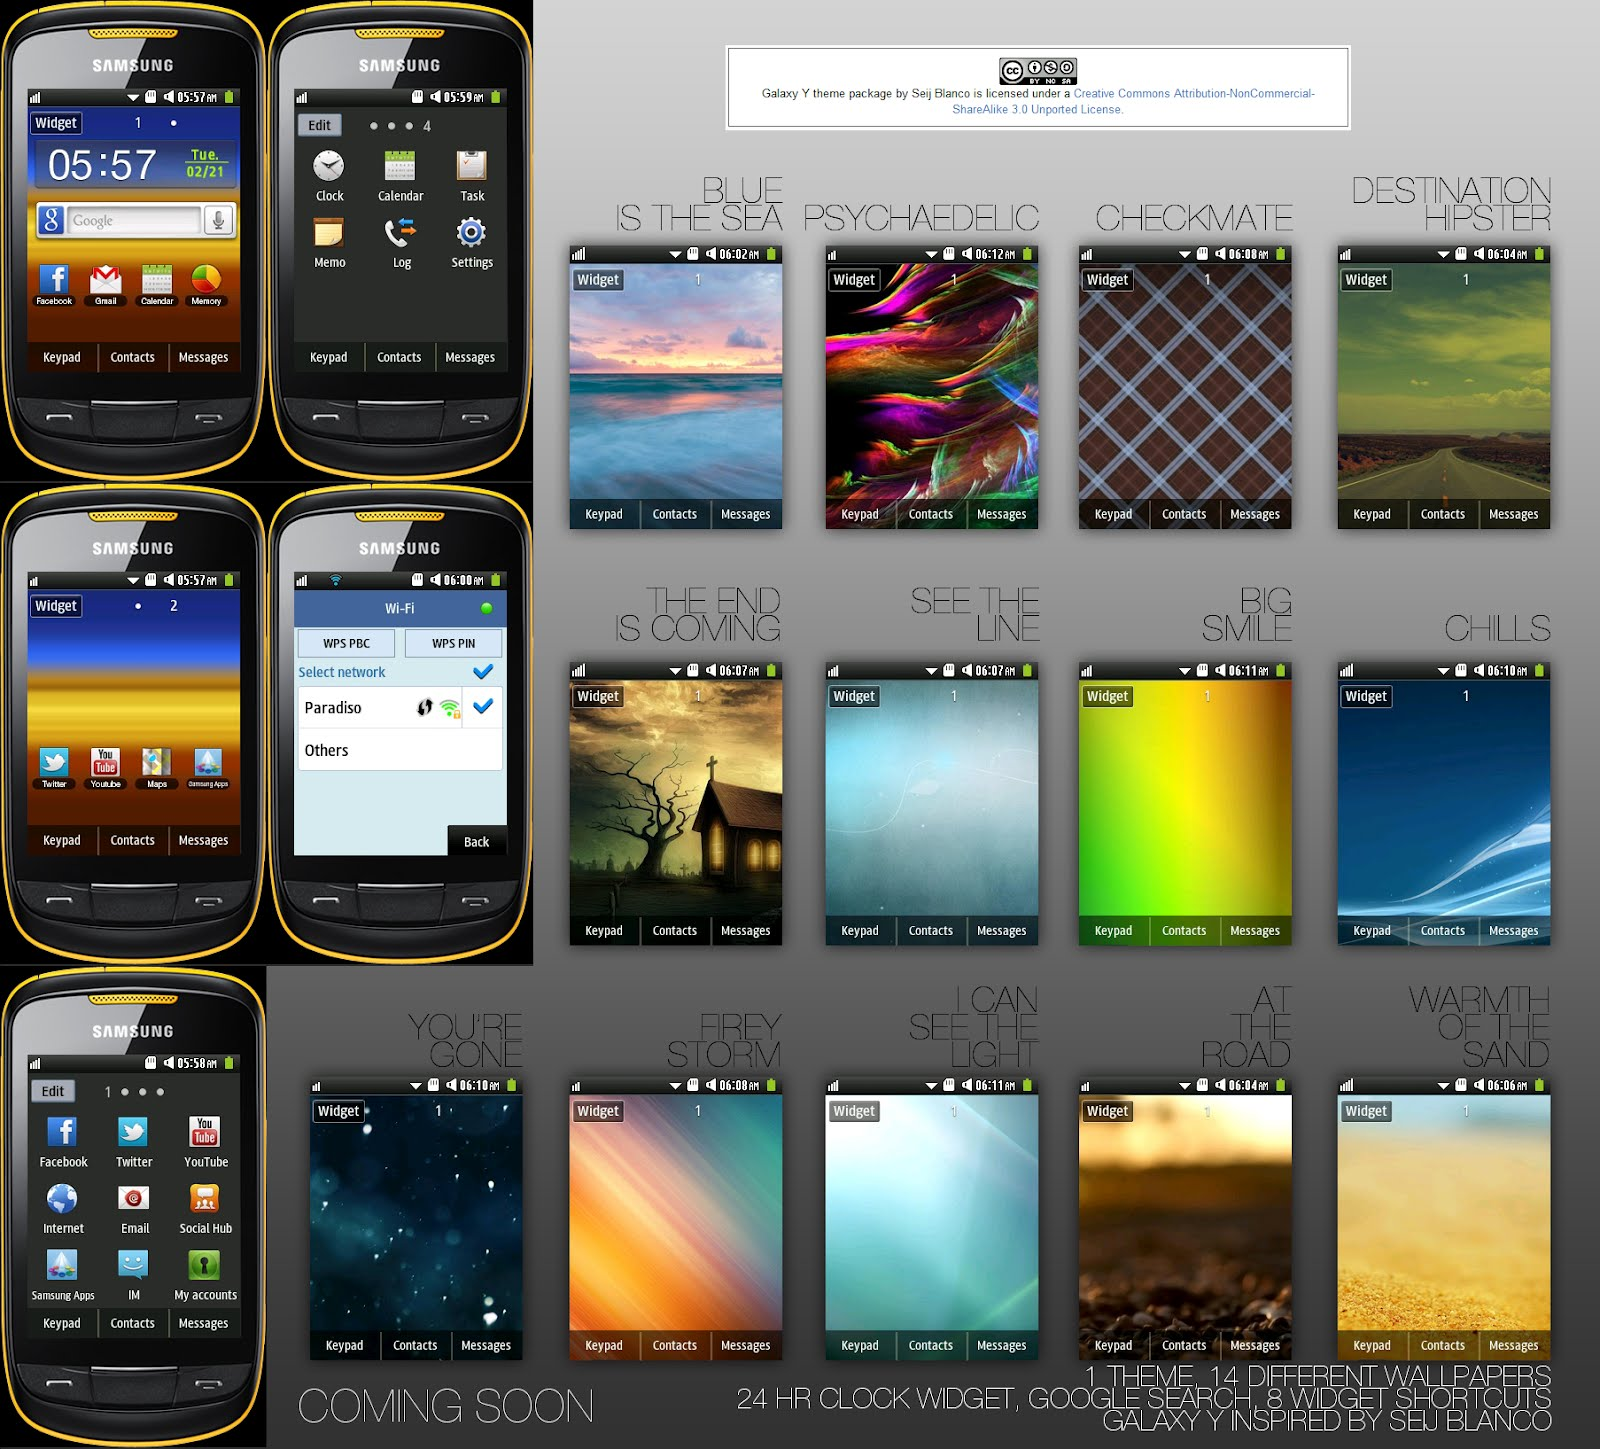 Samsung Corby 2 Theme: Samsung Galaxy Y Package by Seij Blanco